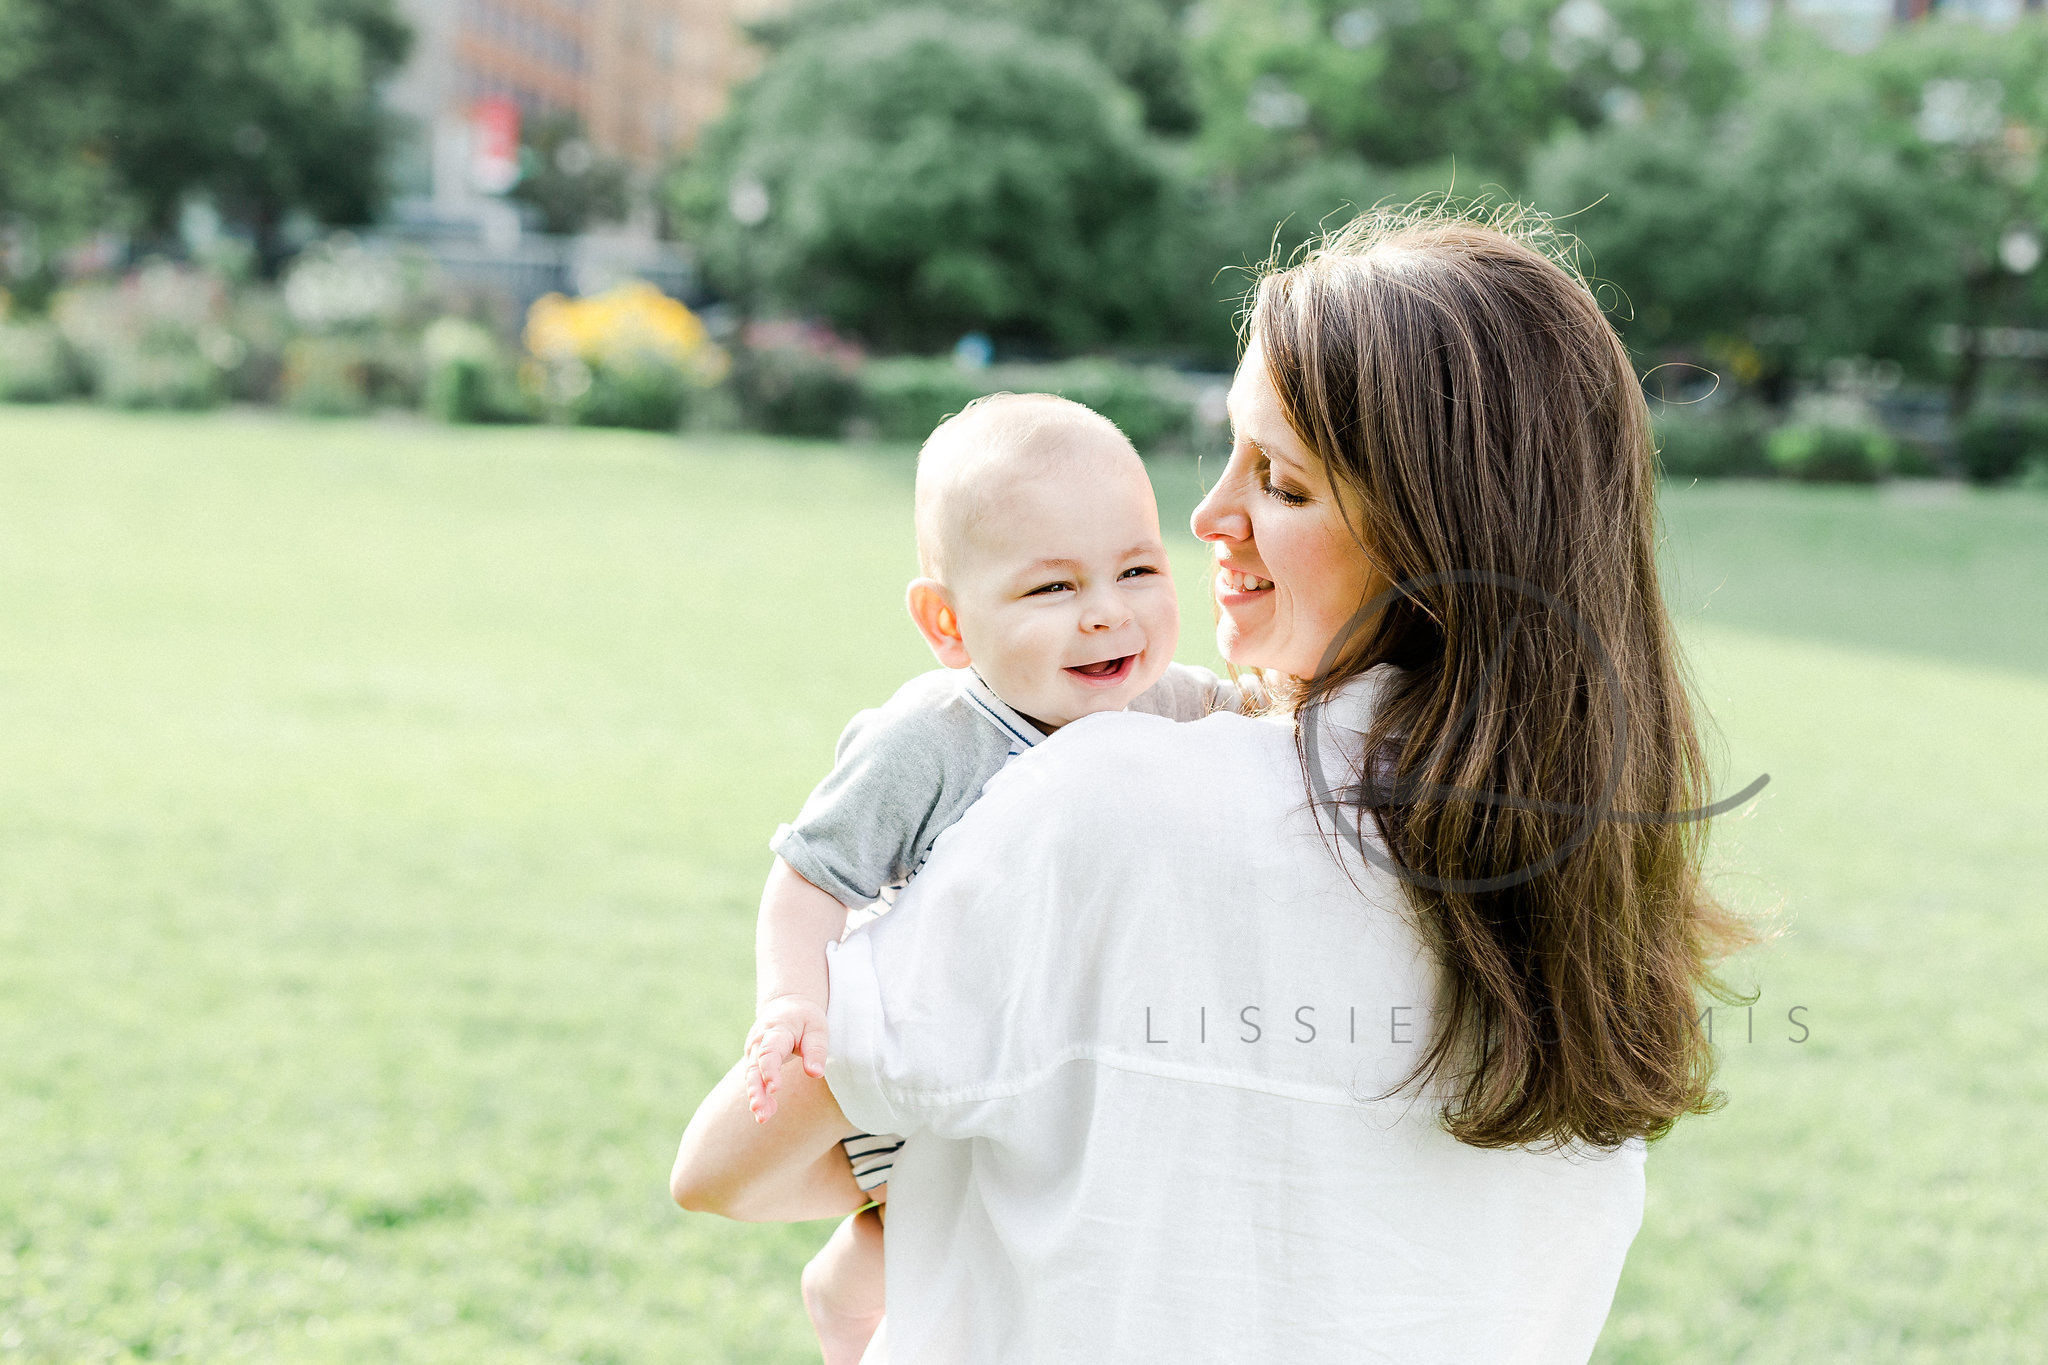 lissie-loomis-photo-newyorkcity-family-photography-baby-photographer-brooklyn27.JPG